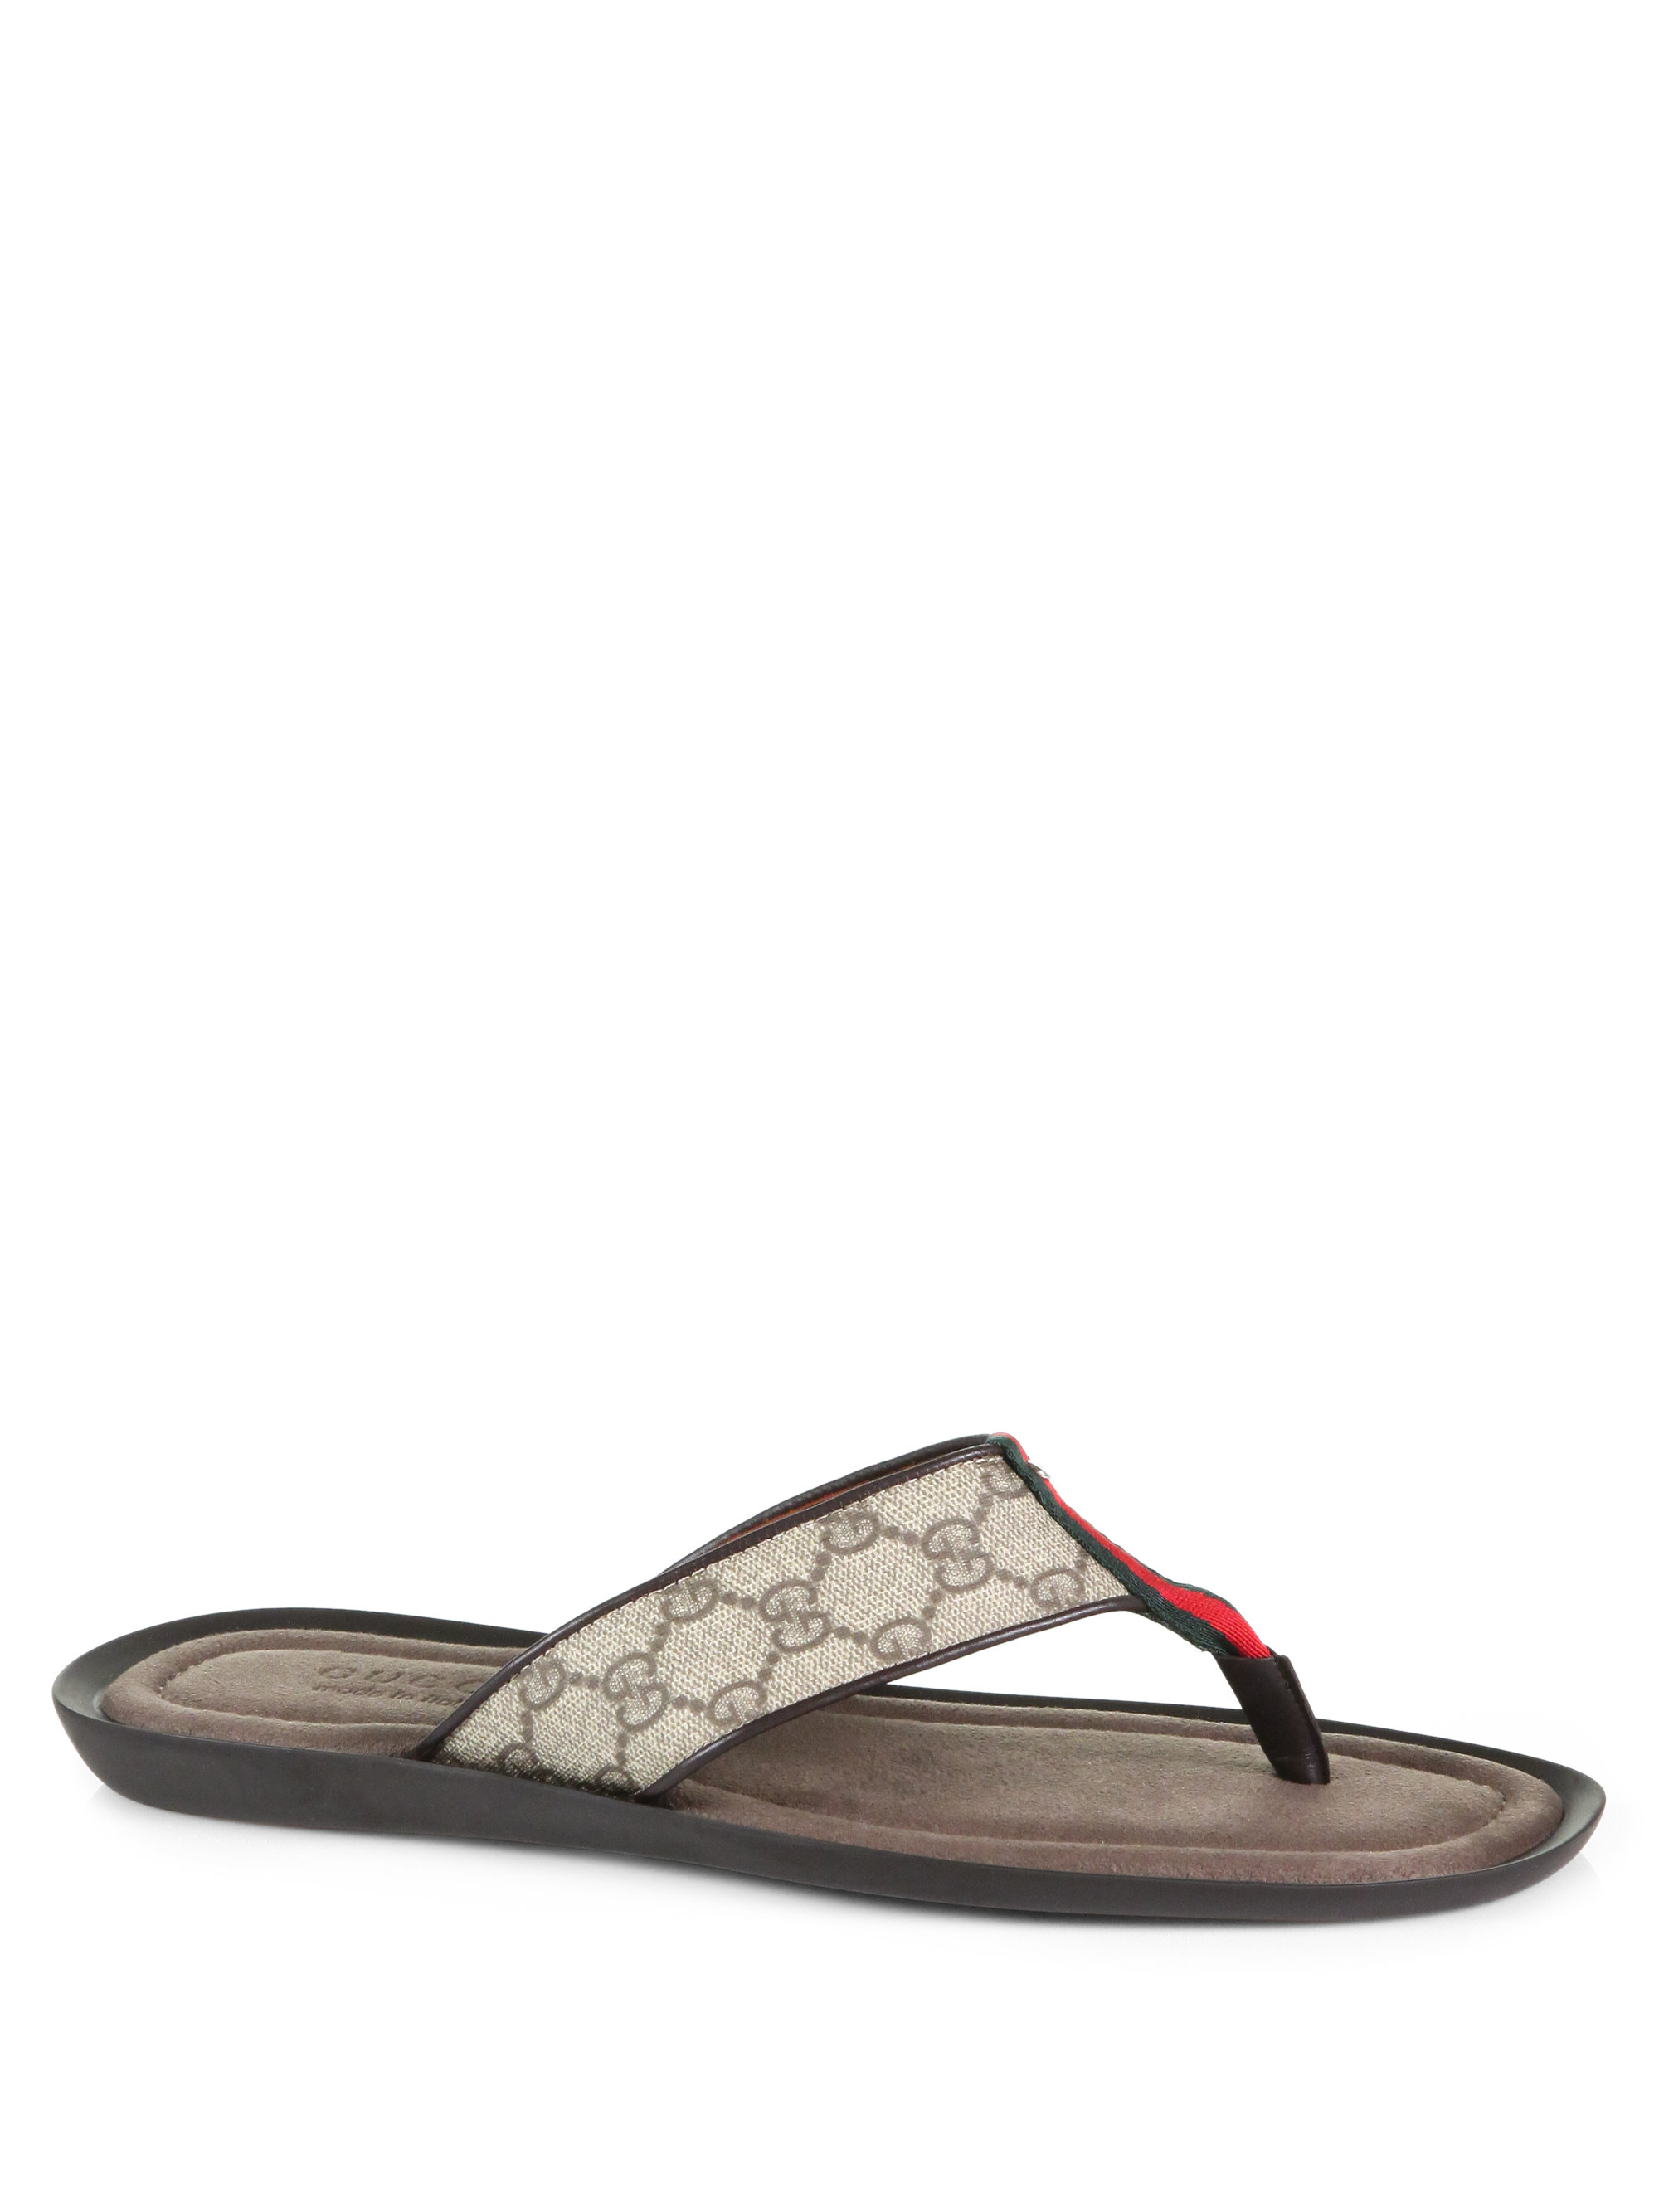 5864218ff06 Gucci Thong Sandal in Gray for Men - Lyst